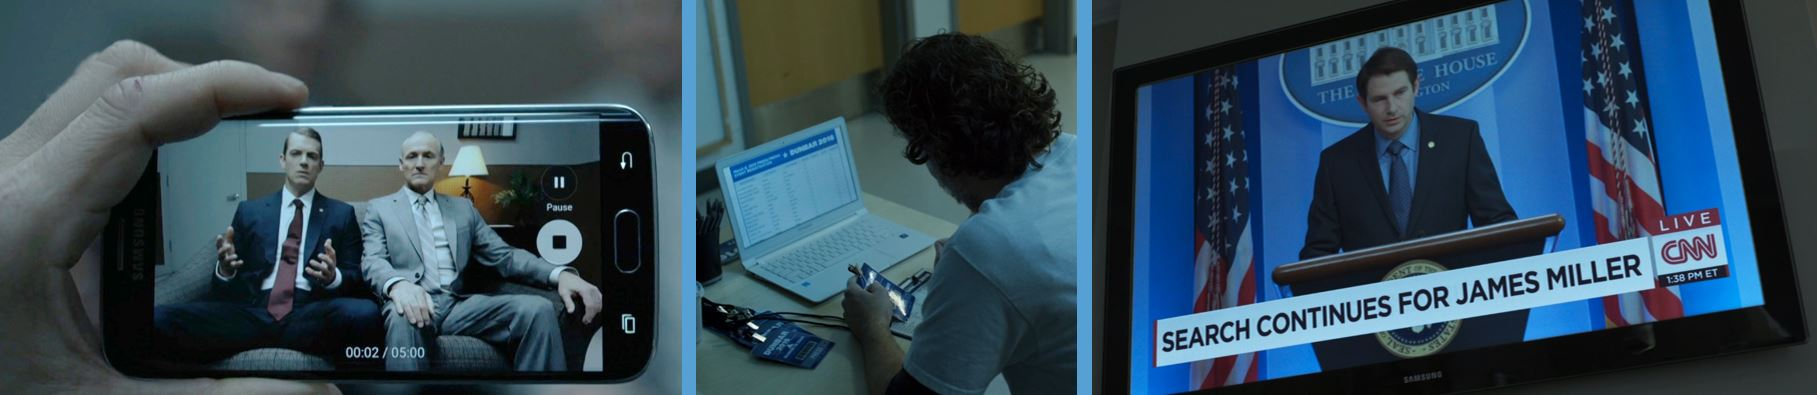 samsung phone laptop TV in season 4 of house of cards